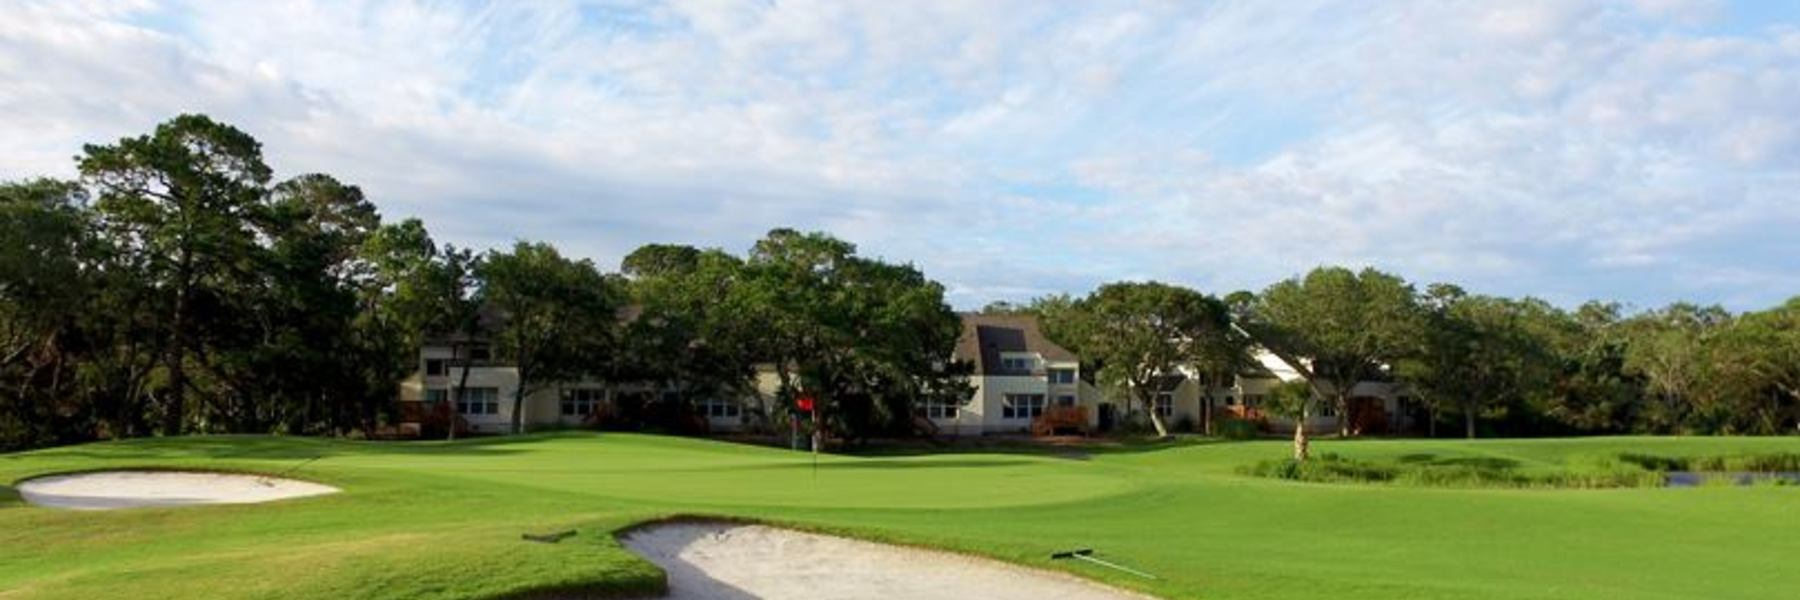 Golf Vacation Package - The Plantation Course at Edisto